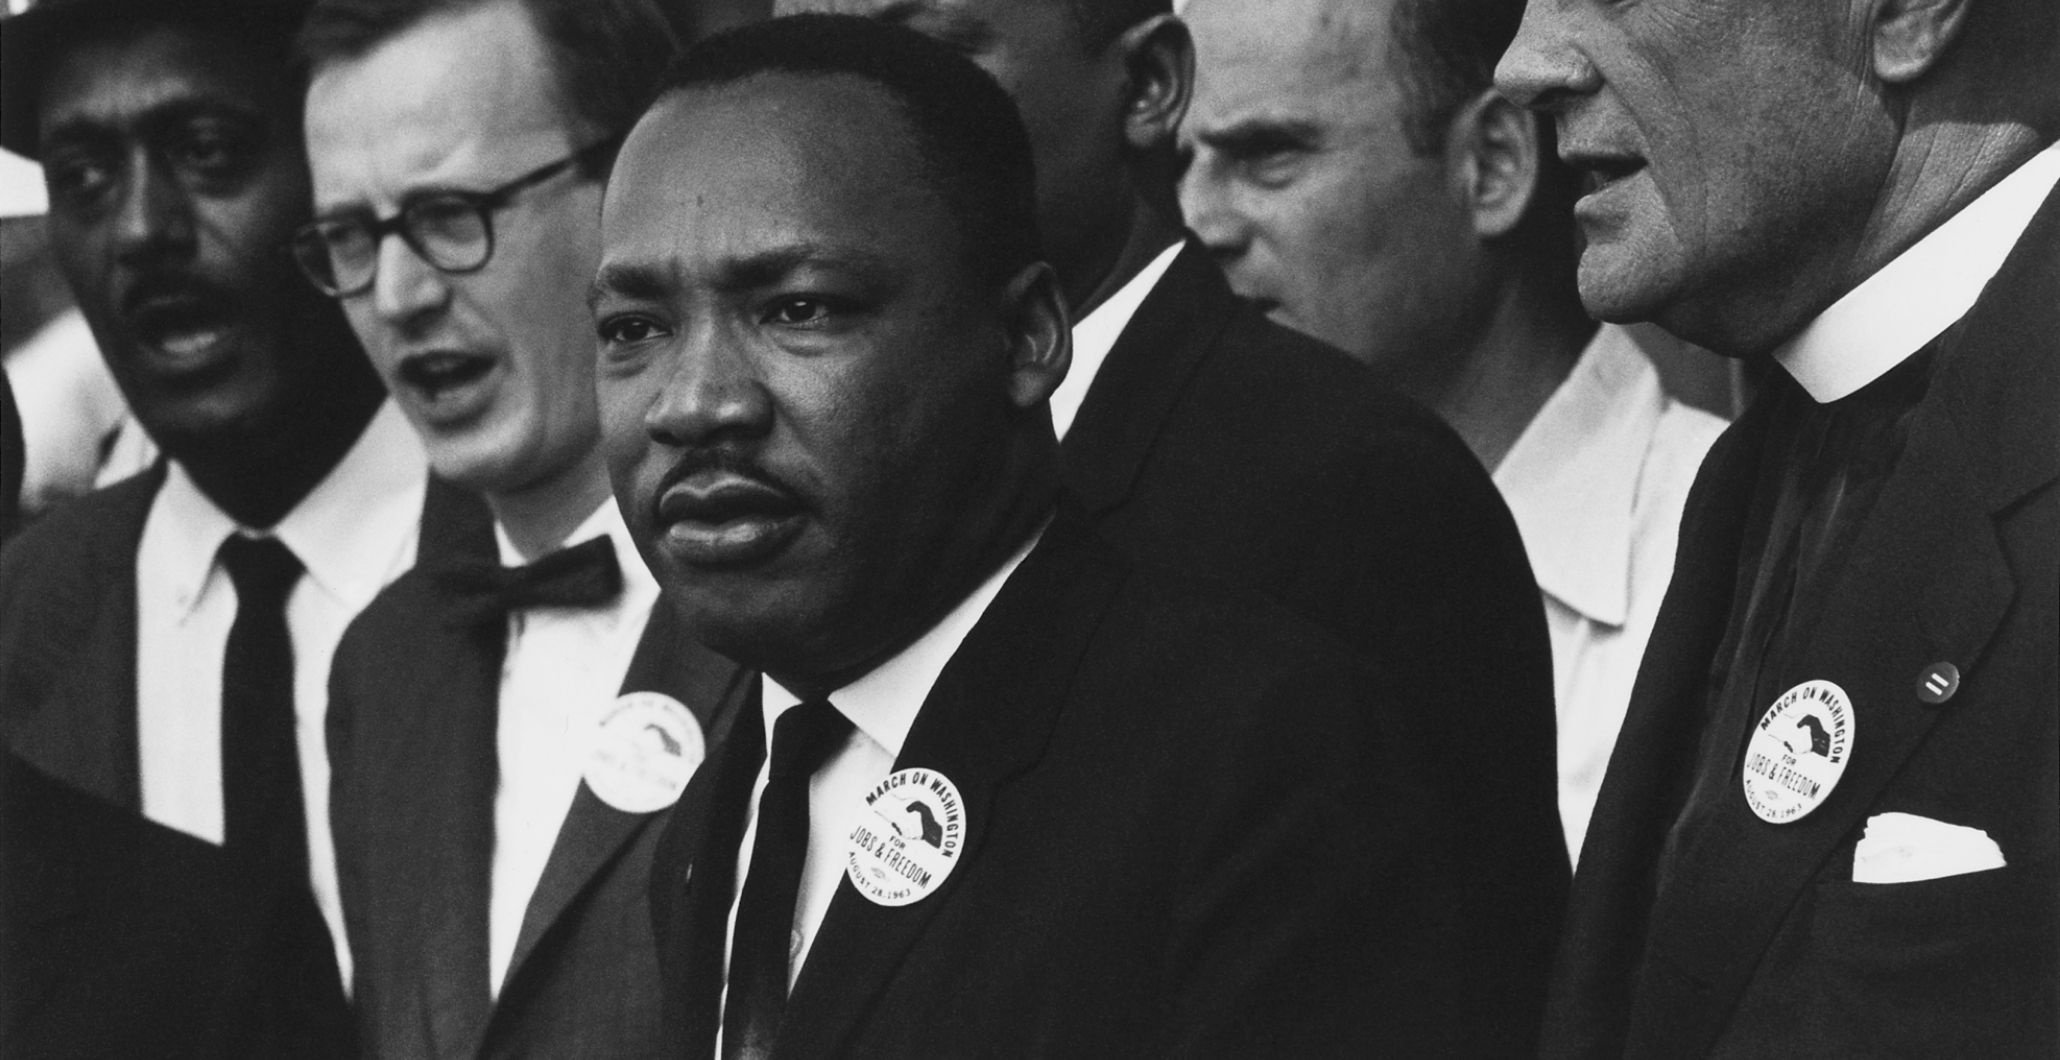 Books for Martin Luther King, Jr. Day